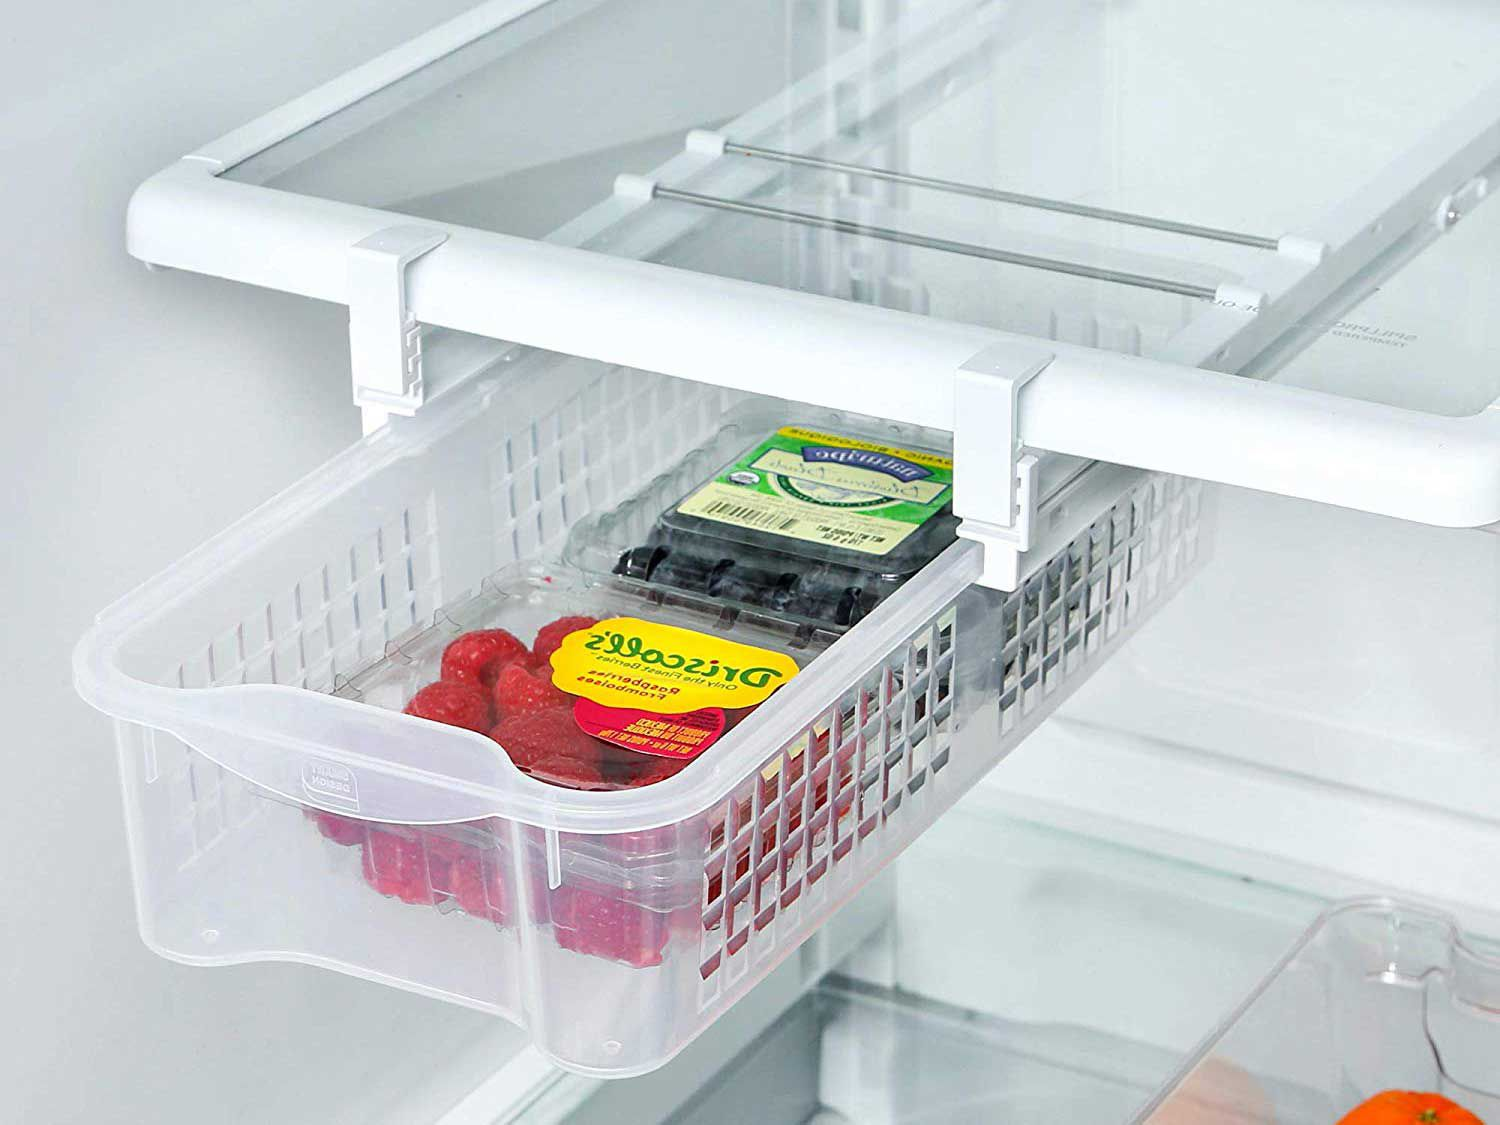 Need an extra drawer? This pull-out bin is easy to install on your existing fridge shelves and holds up to 20 pounds.